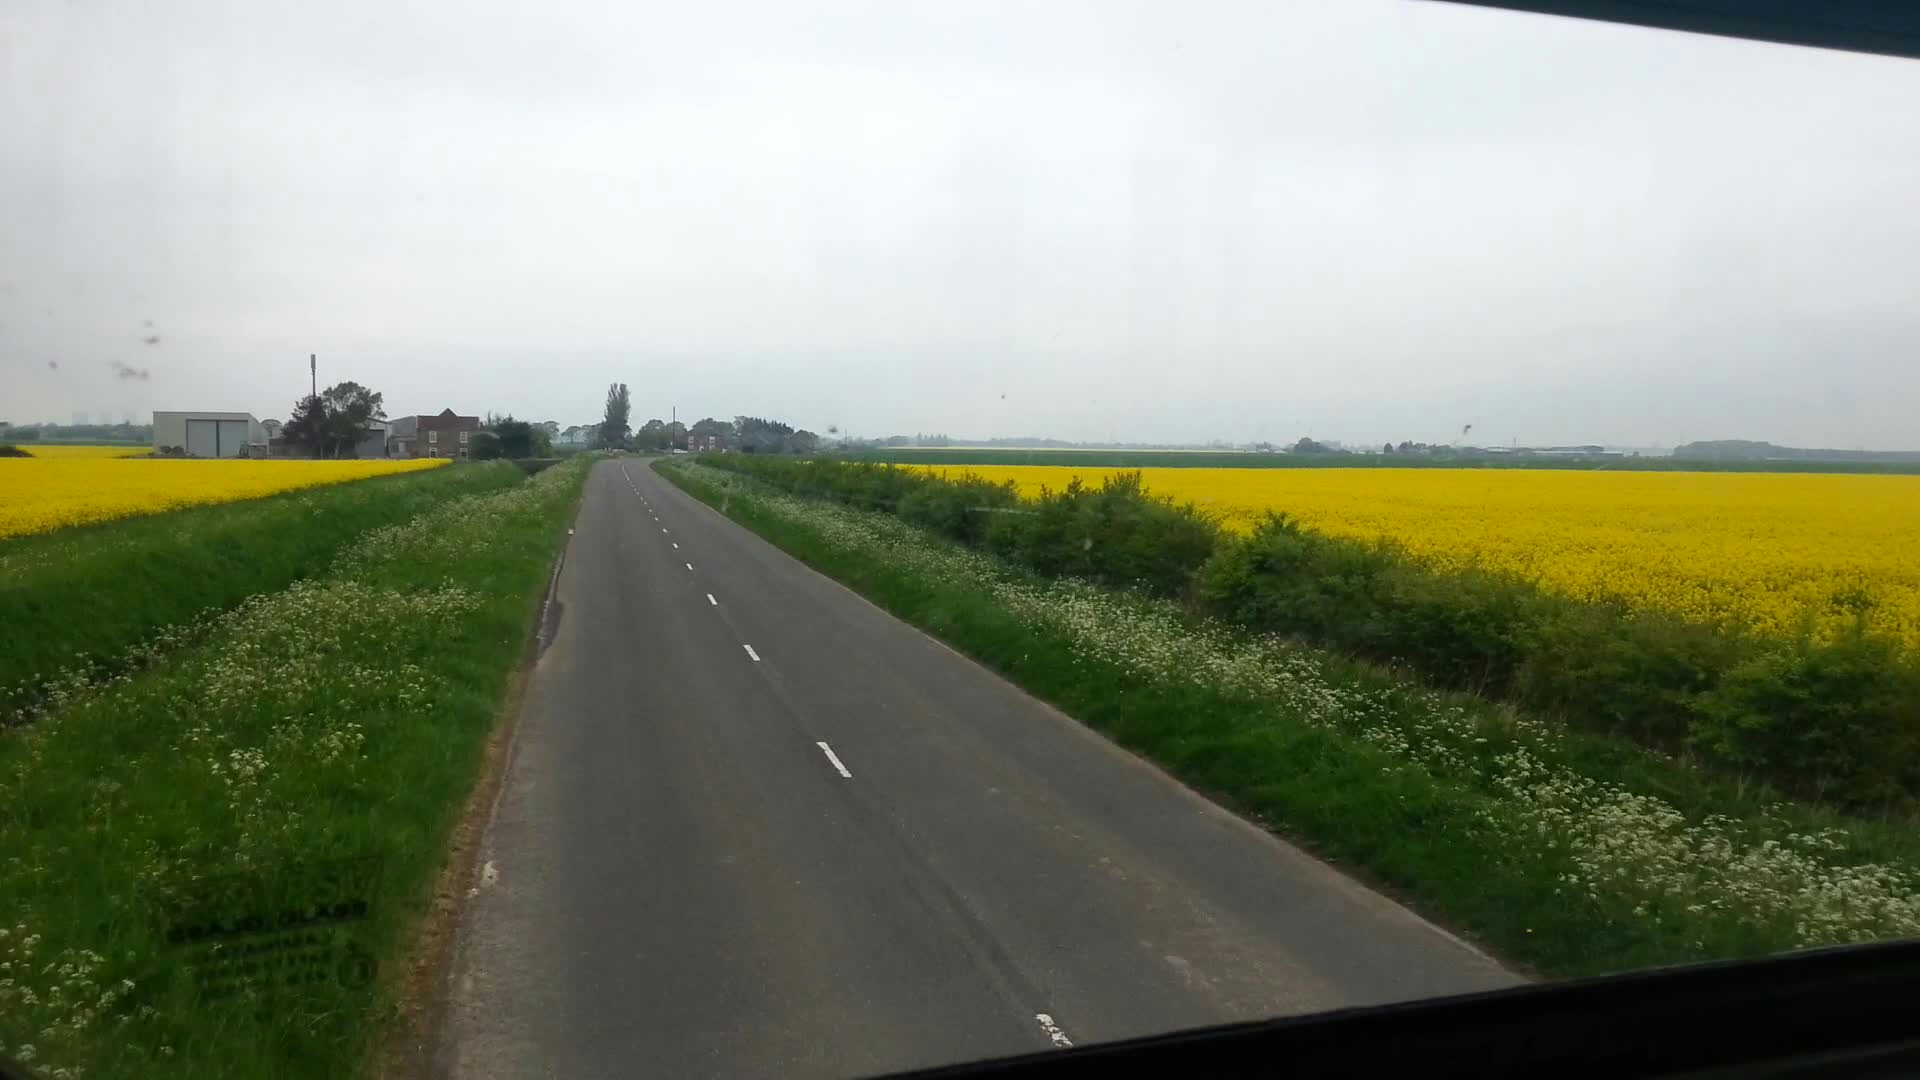 Approaching the end of Moorends Rd